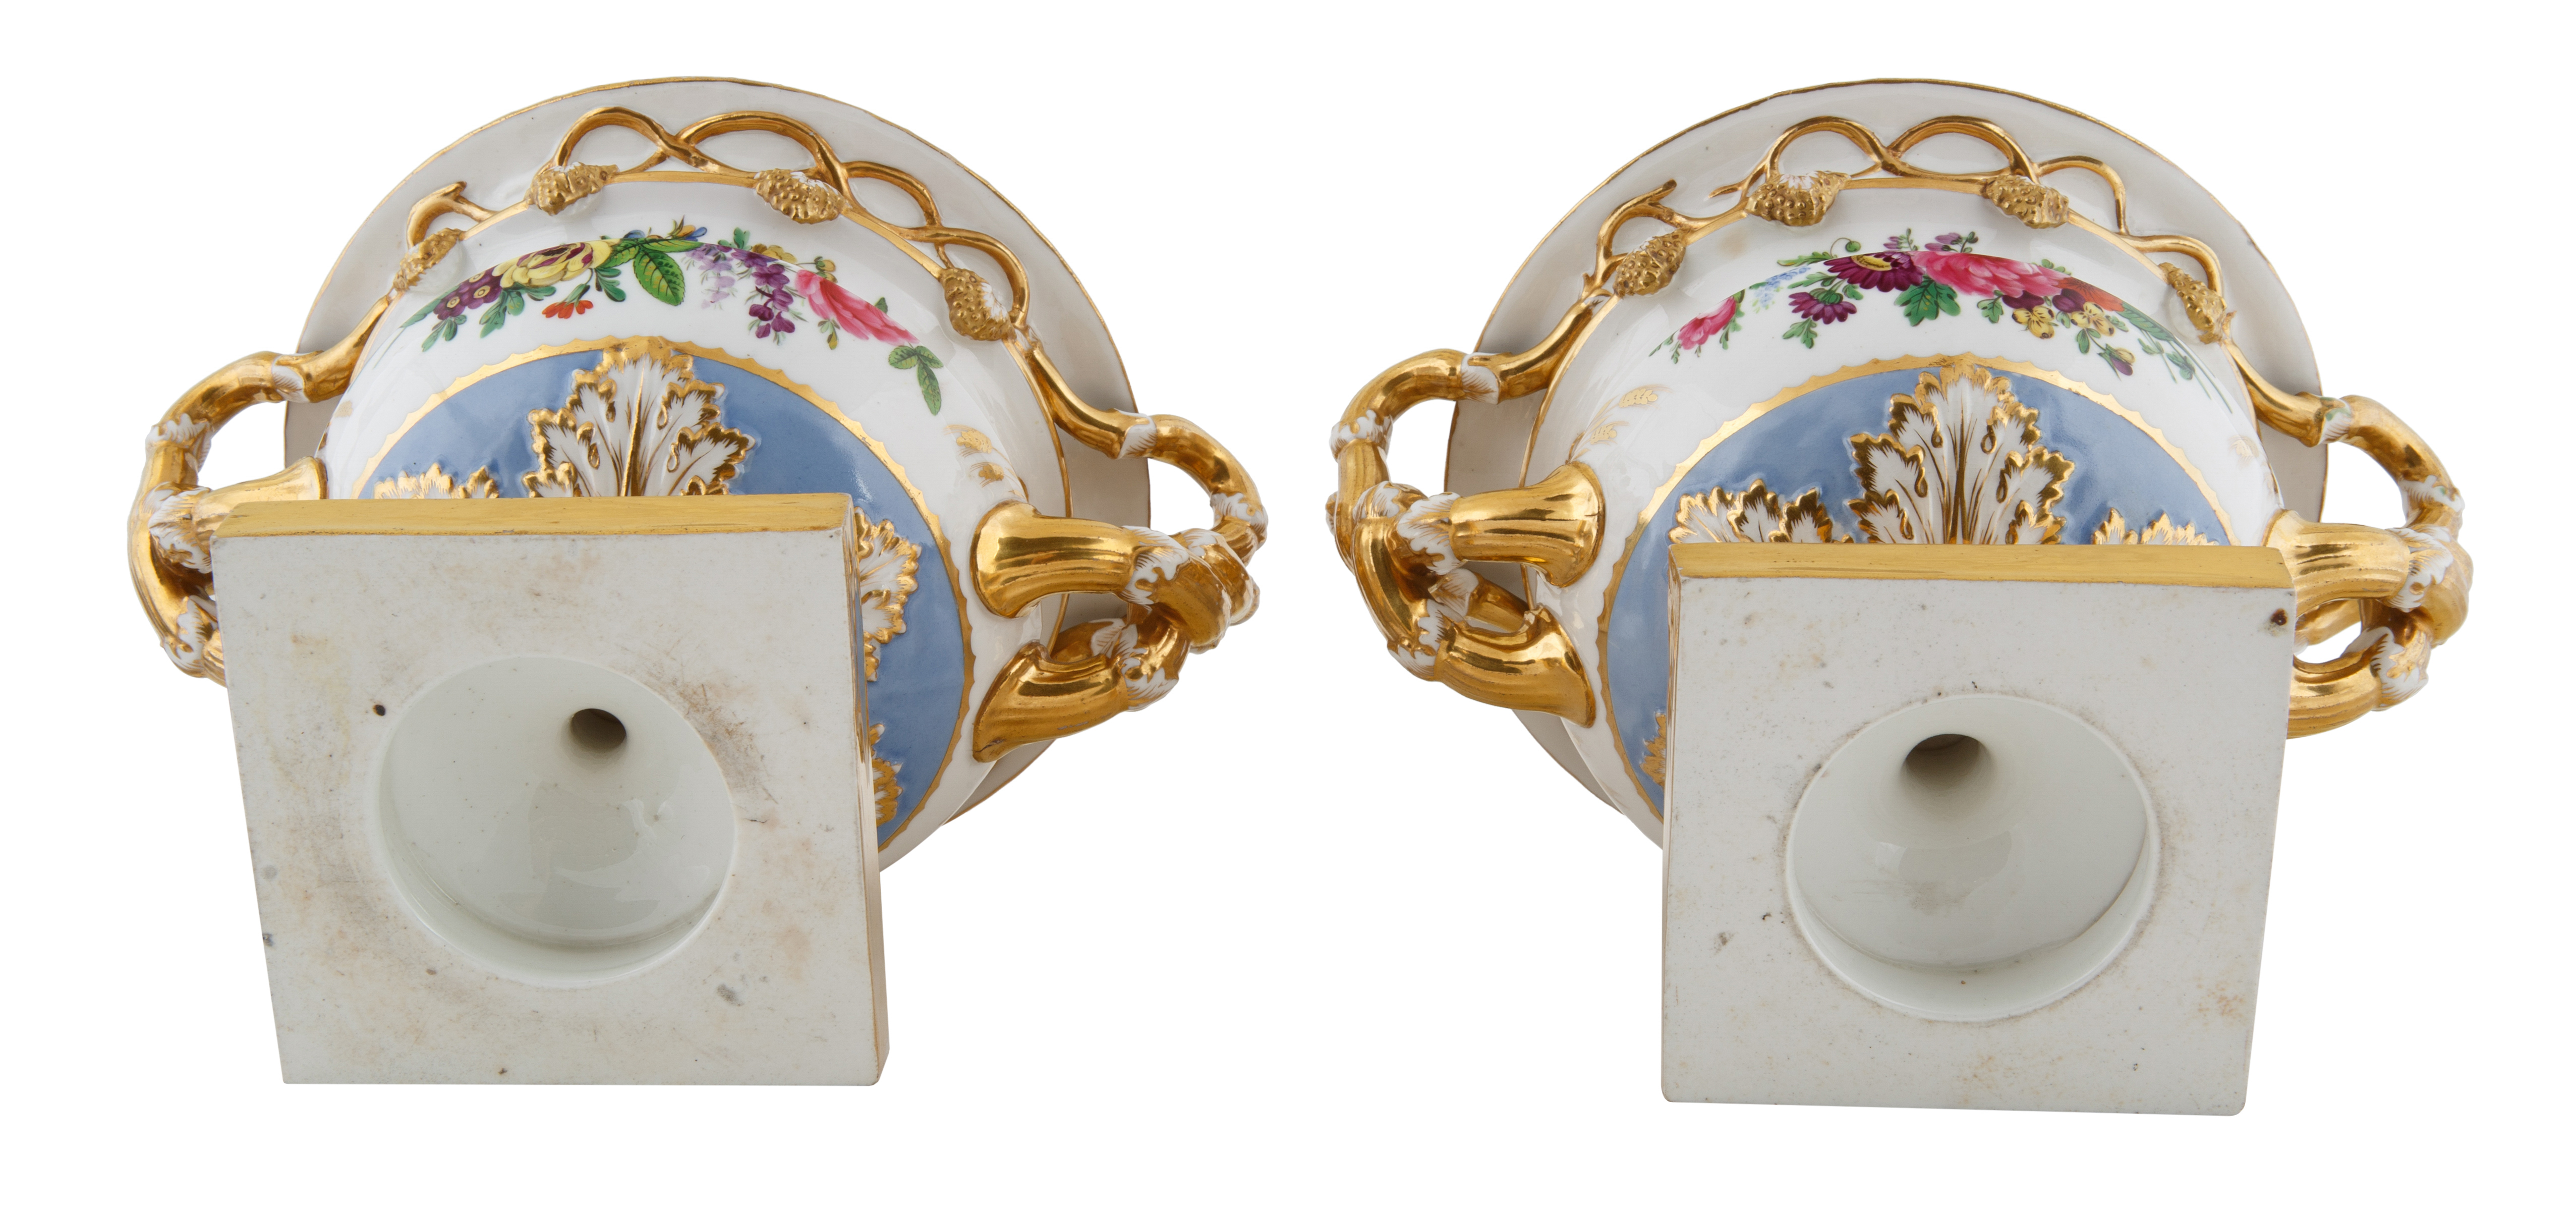 CONTINENTAL PORCELAIN COVERED URNS - Image 3 of 3